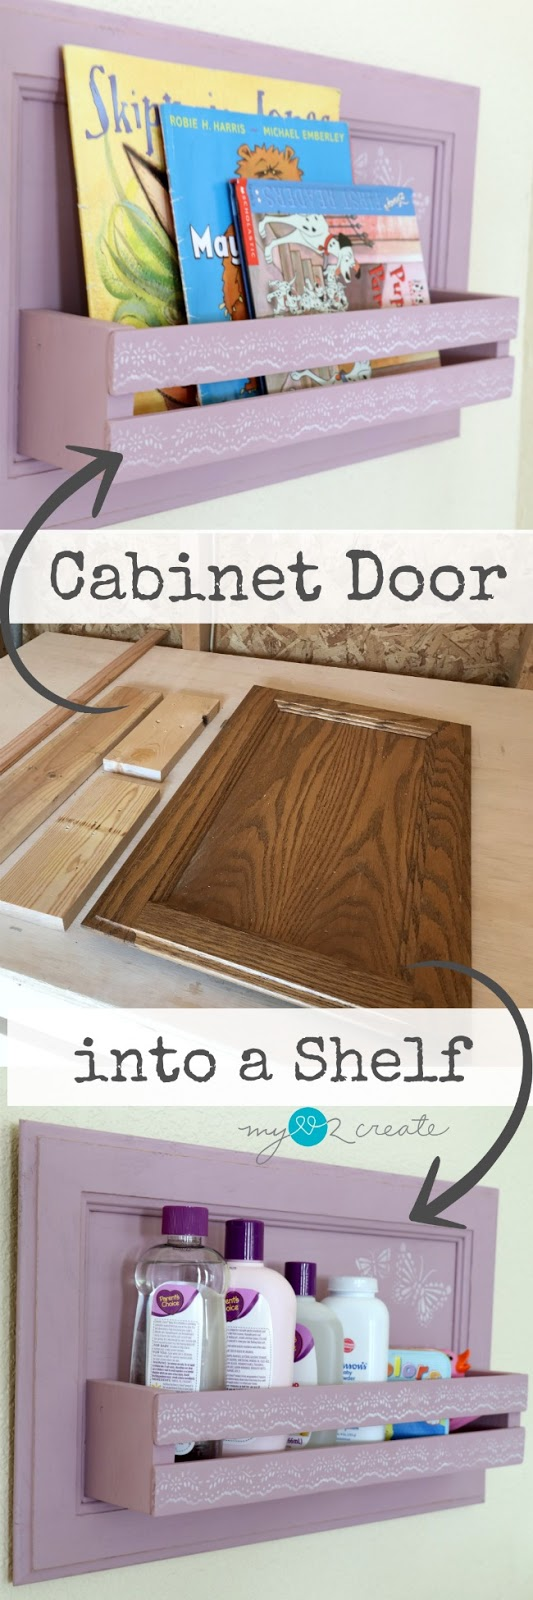 How to turn a cabinet door into a shelf, full picture tutorial at MyLove2Create